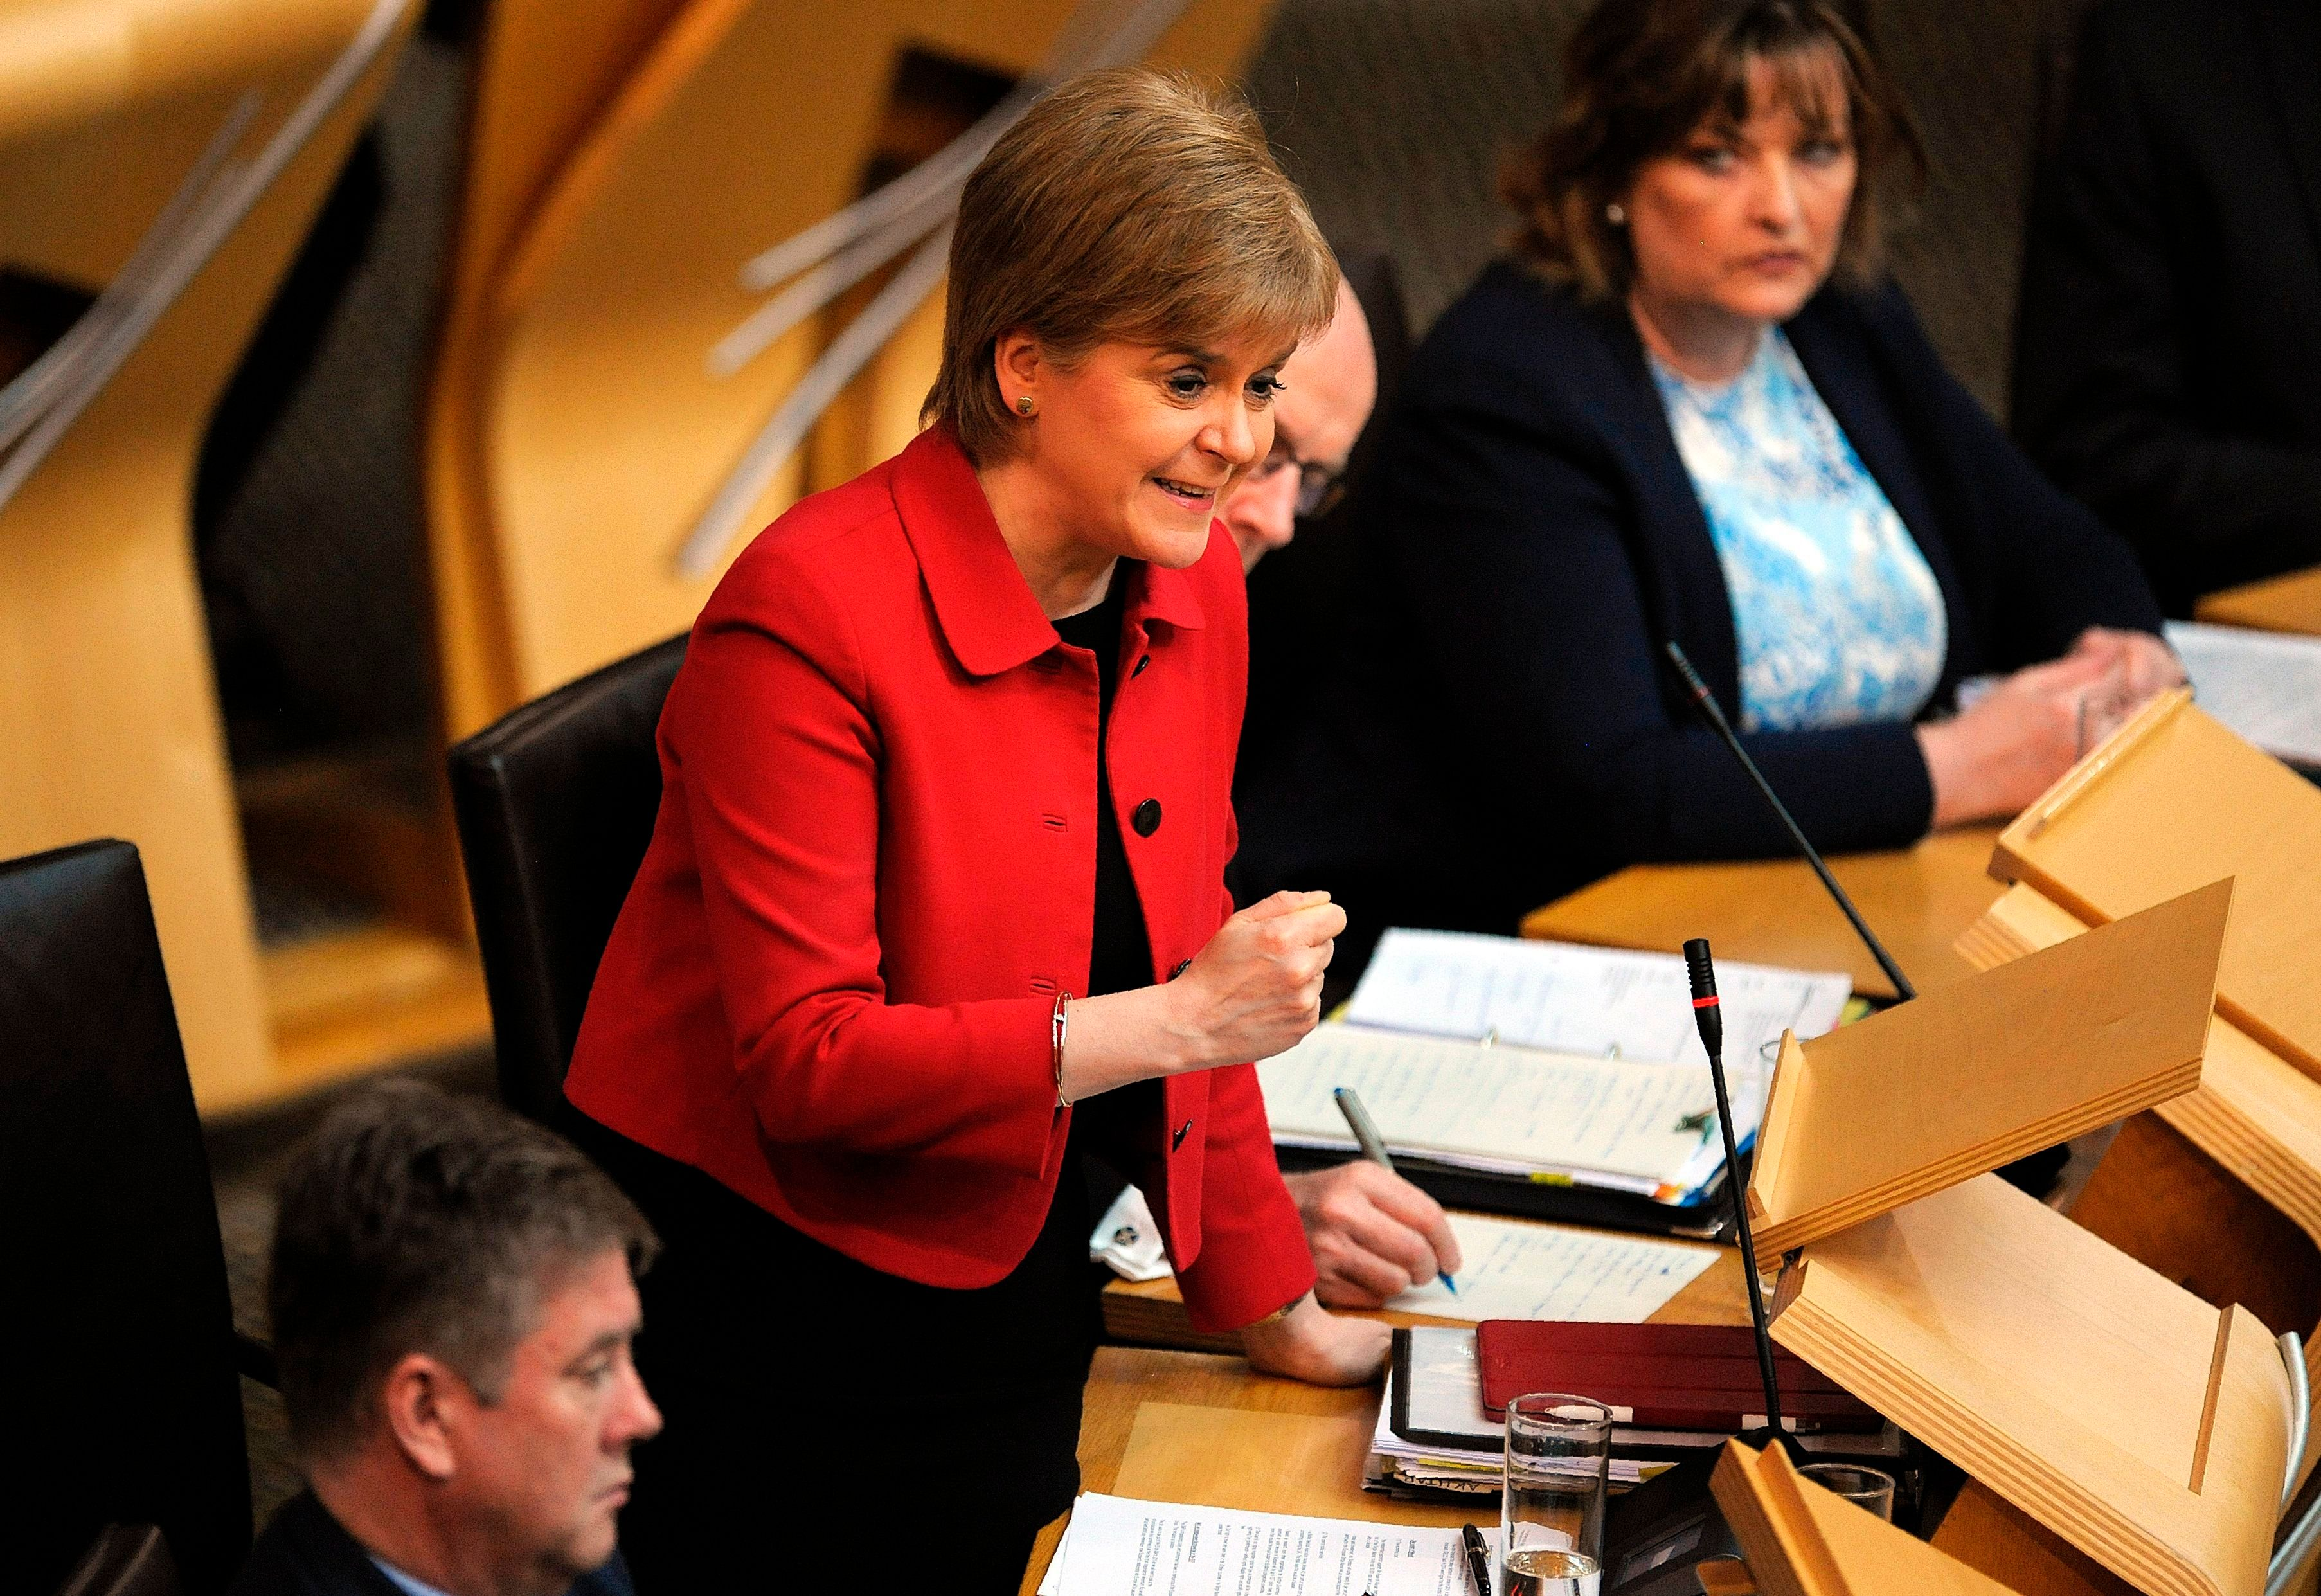 Scotland's First Minister Nicola Sturgeon speaks in the chamber  on the second day of the 'Scotland's Choice' debate on a motion to seek the authority to hold an indpendence referendum, at the Scottish Parliament in Edinburgh, on March 28, 2017. The vote in Scotland's parliament on supporting First Minister Nicola Sturgeon's call for a new independence referendum resumed Tuesday, aftering it was delayed in a gesture of respect following the March 22 attack on the British parliament. / AFP PHOTO / POOL / Andy Buchanan        (Photo credit should read ANDY BUCHANAN/AFP/Getty Images)